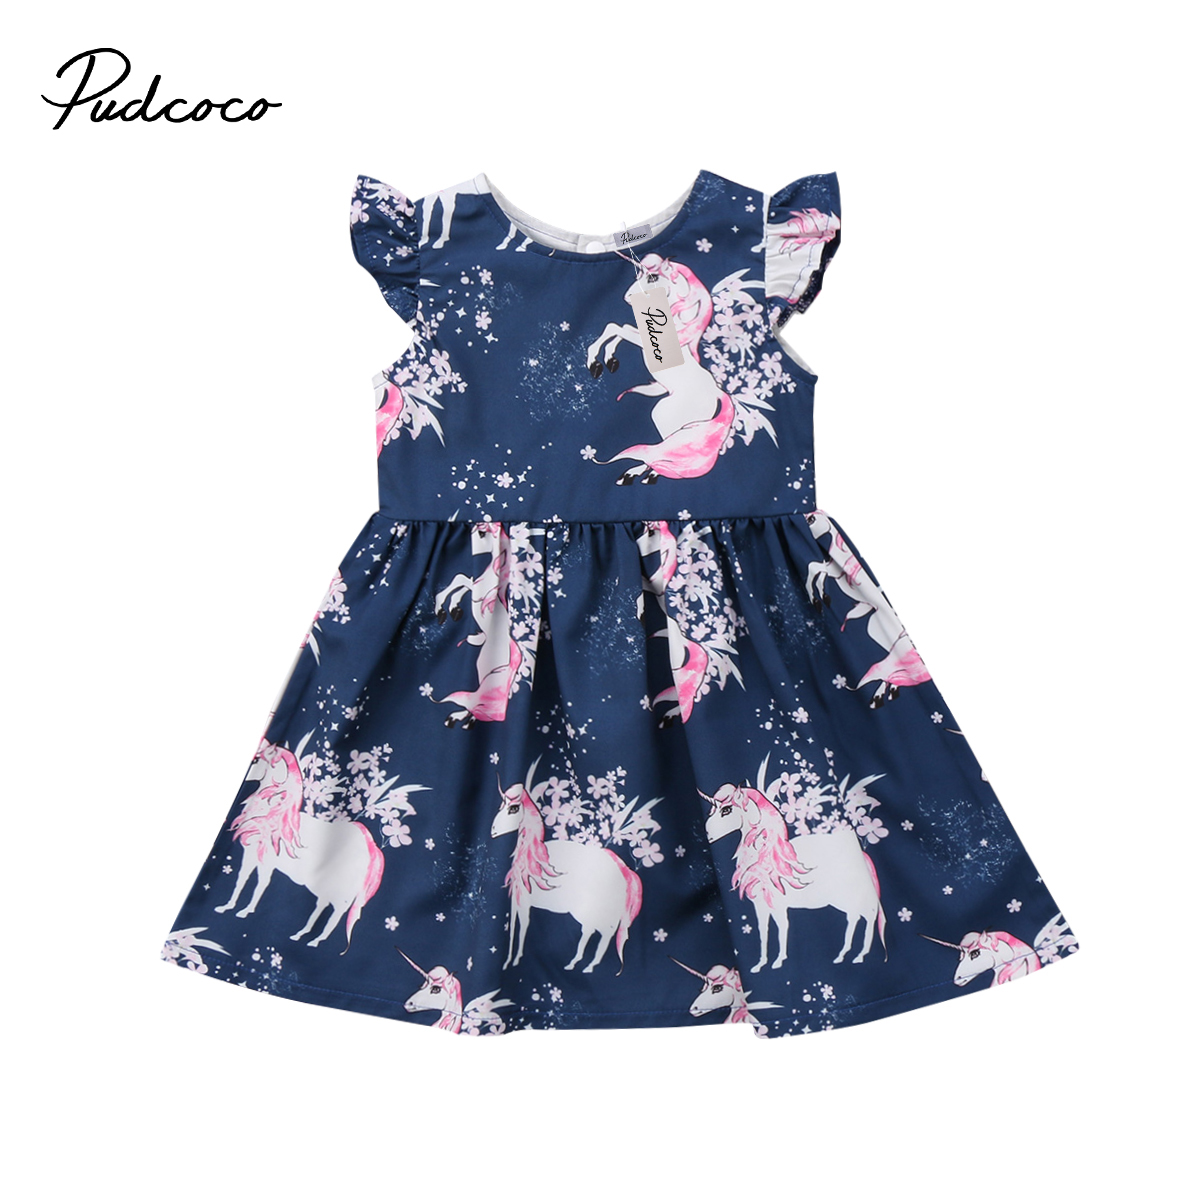 Cute Toddler Baby Girl Floral Animal Unicorn Pattern Sleeveless Dress Summer Cotton A-Line Party Dresses Vestidos cute floral print sleeveless striped a line dress for girl